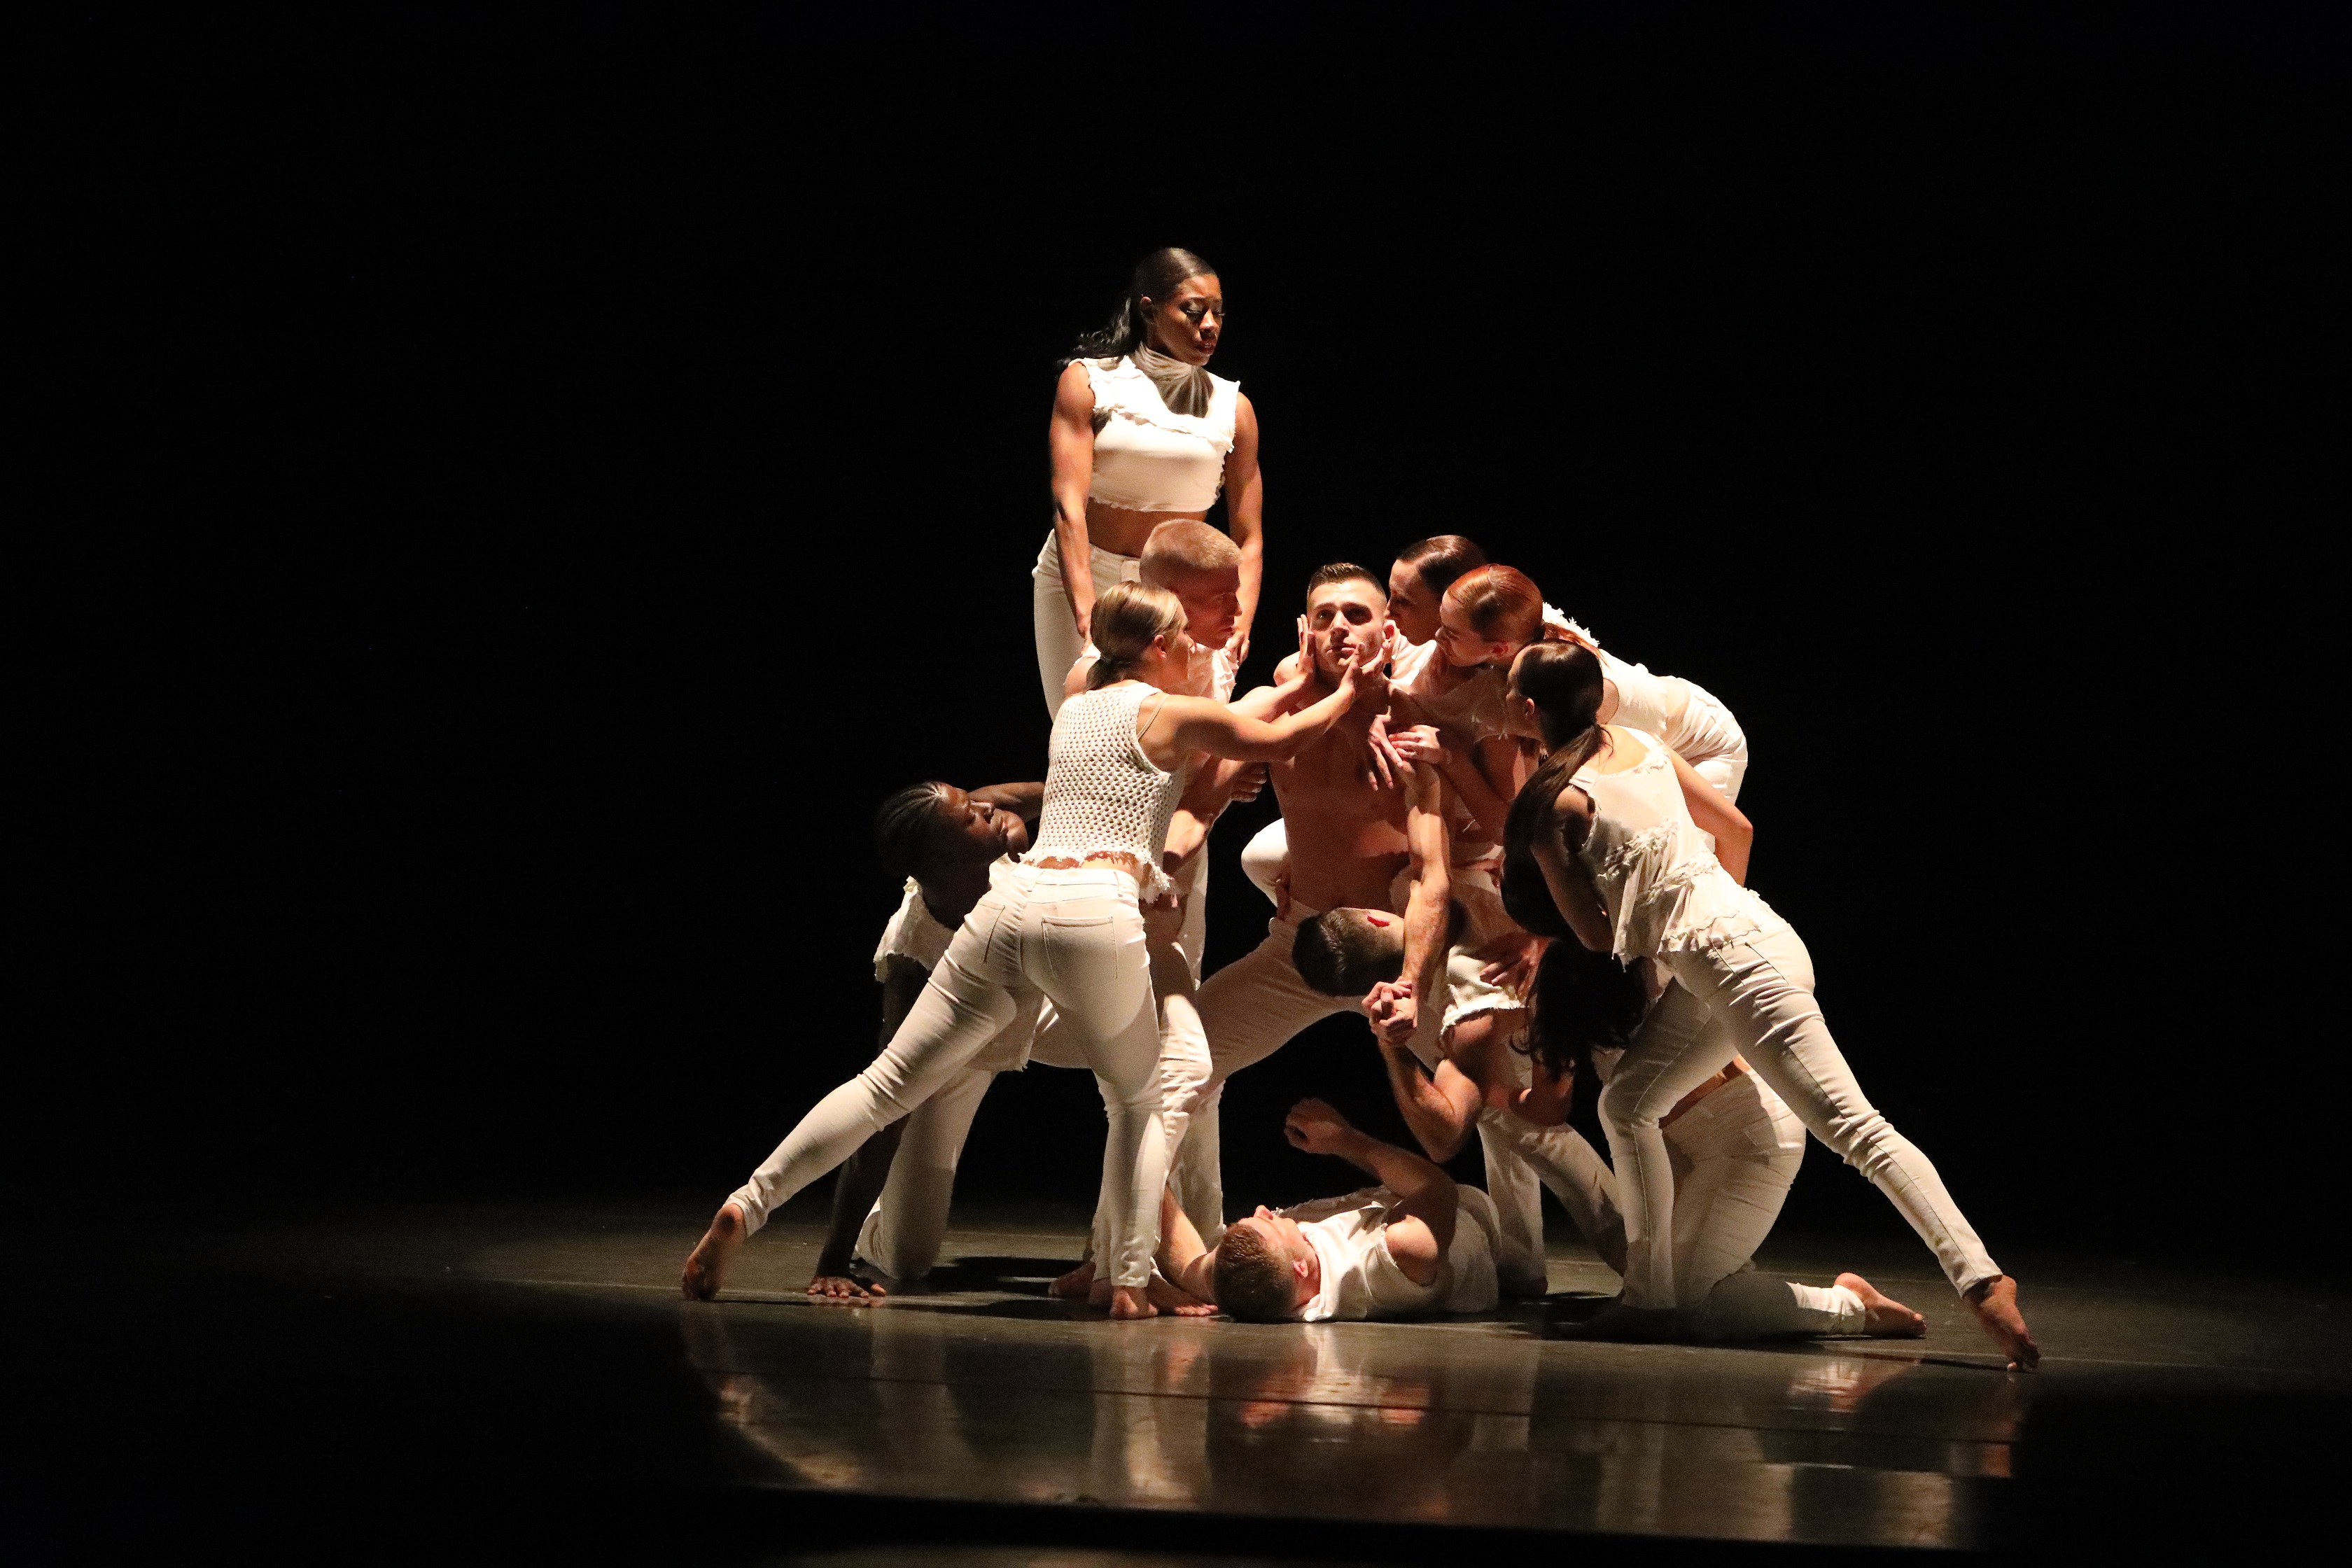 """Giordano Dance Chicago will present """"Flickers"""" by choreography Miranda Davis as part of its weekend program at the Harris Theater."""